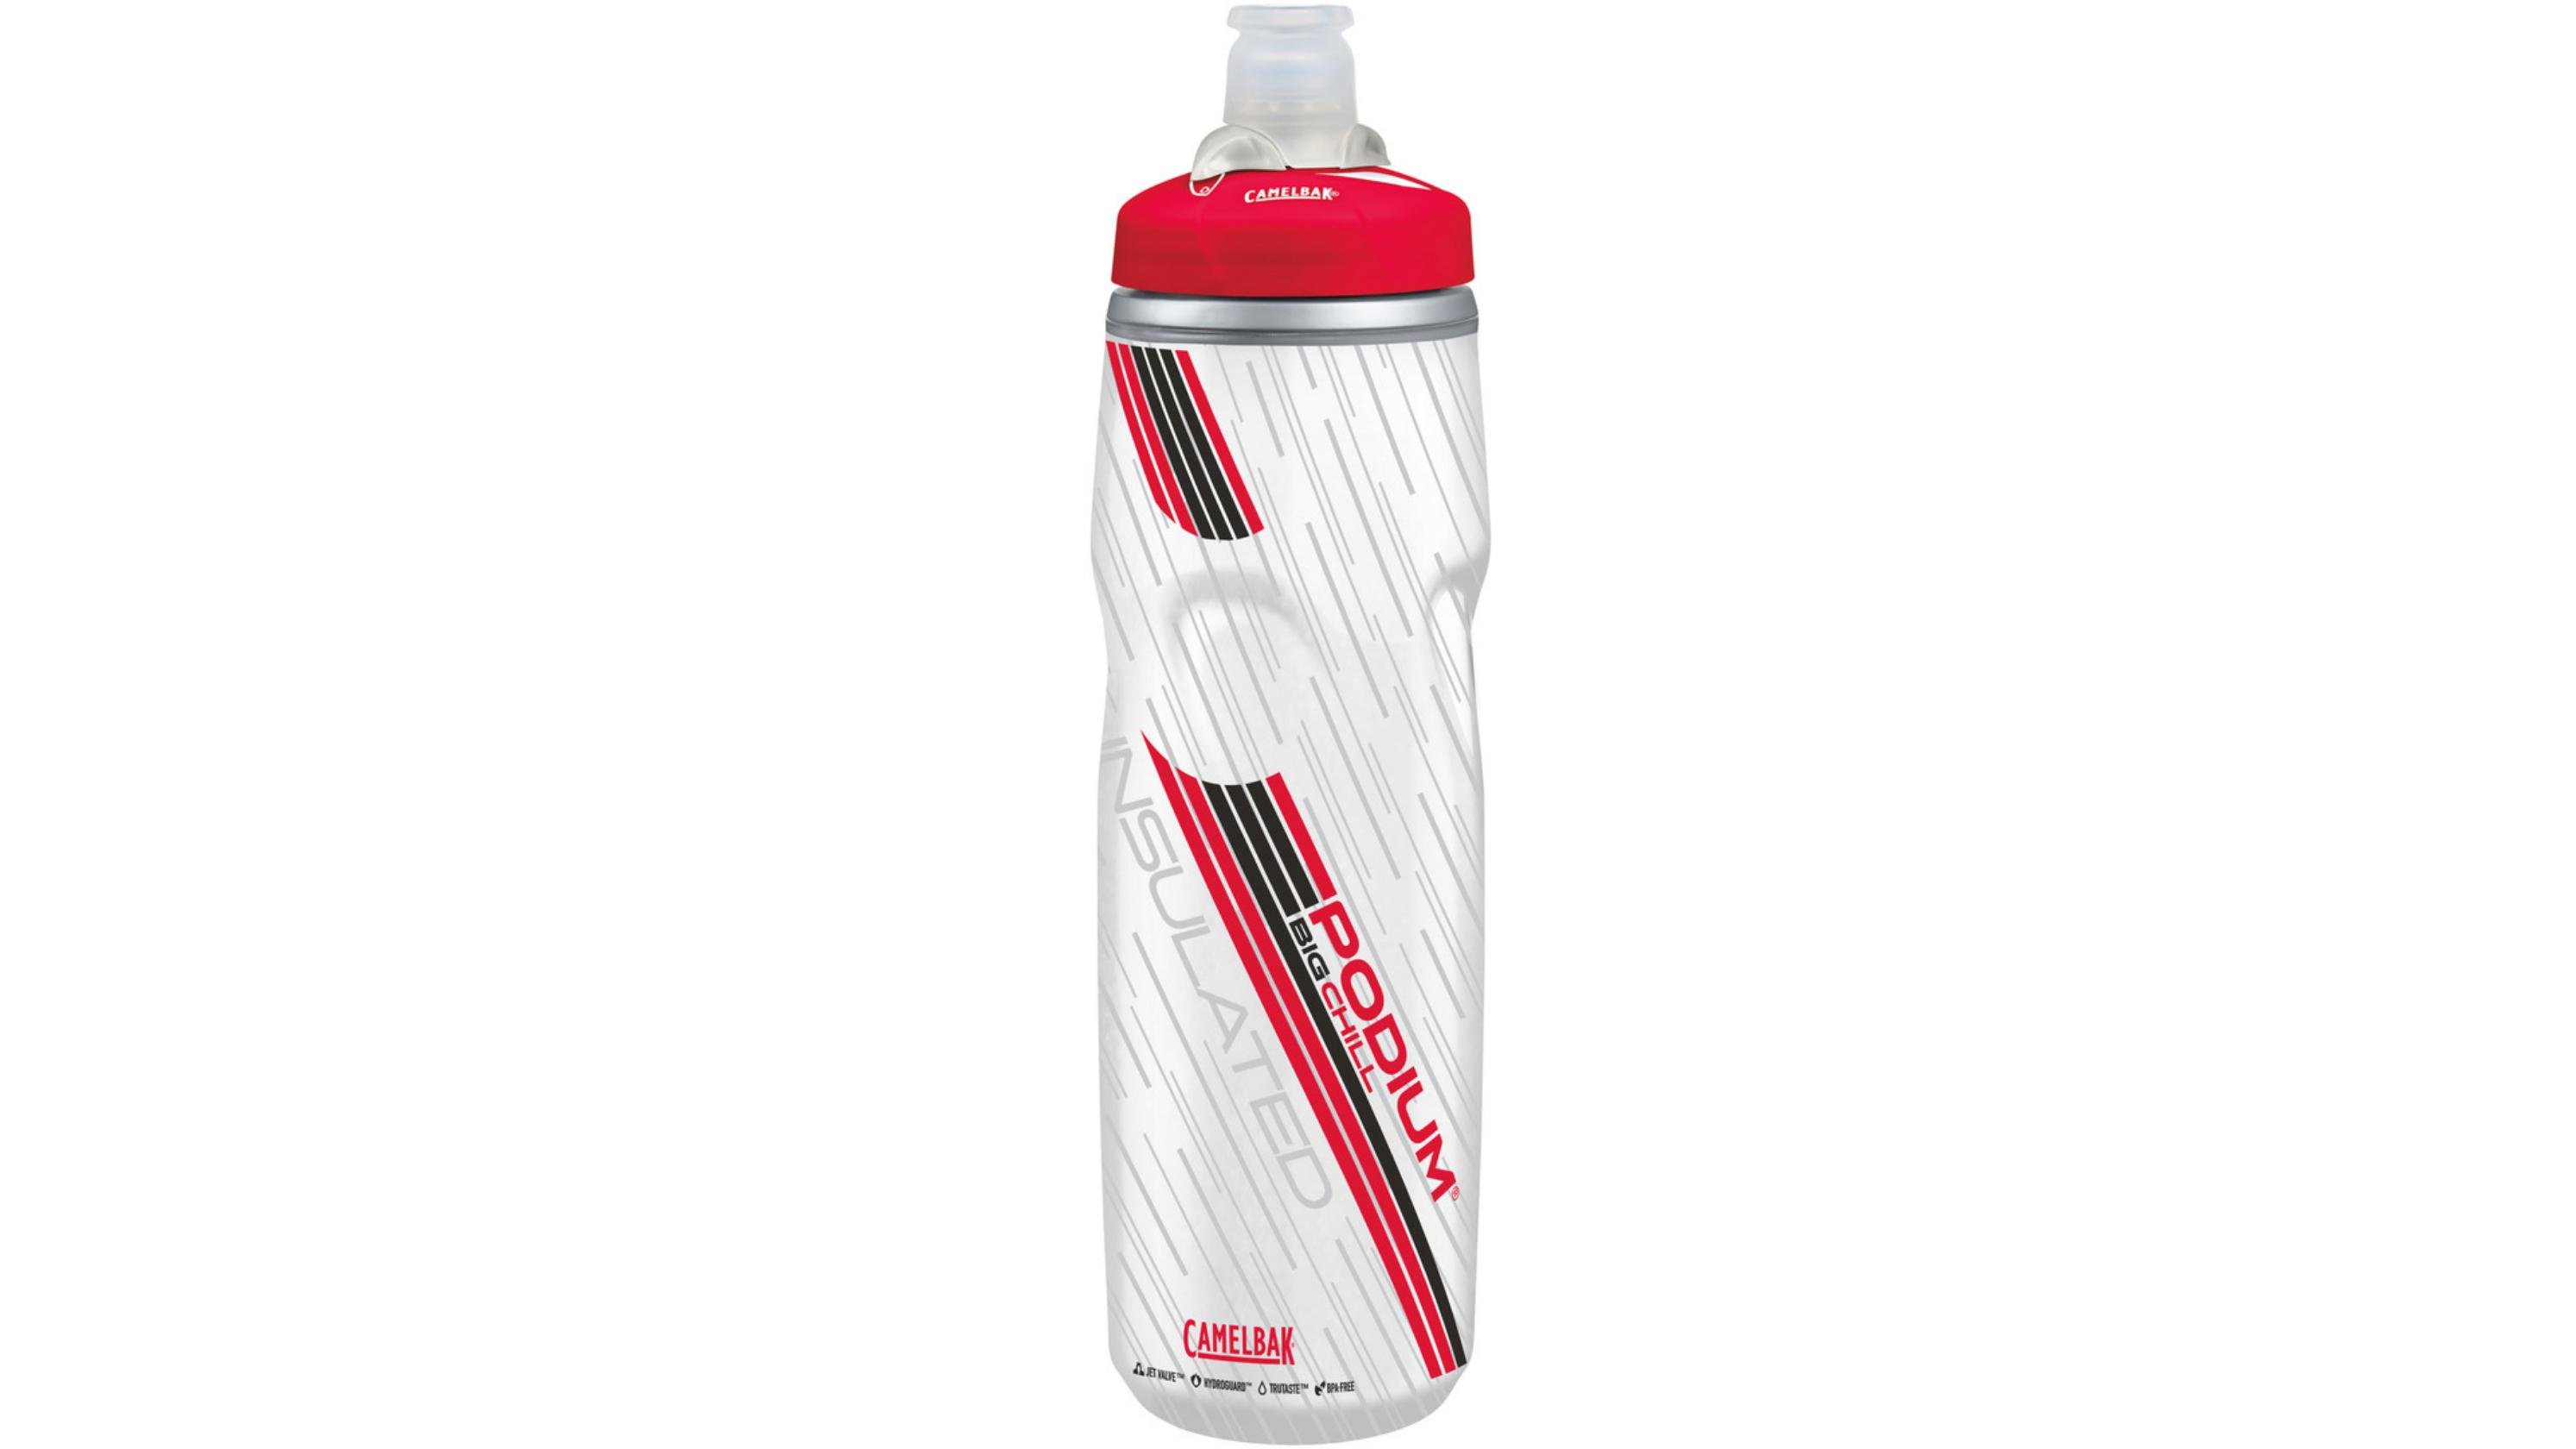 CAMELBAK Trinkflasche Podium Big Chill ab 2018 - Farbe: Red